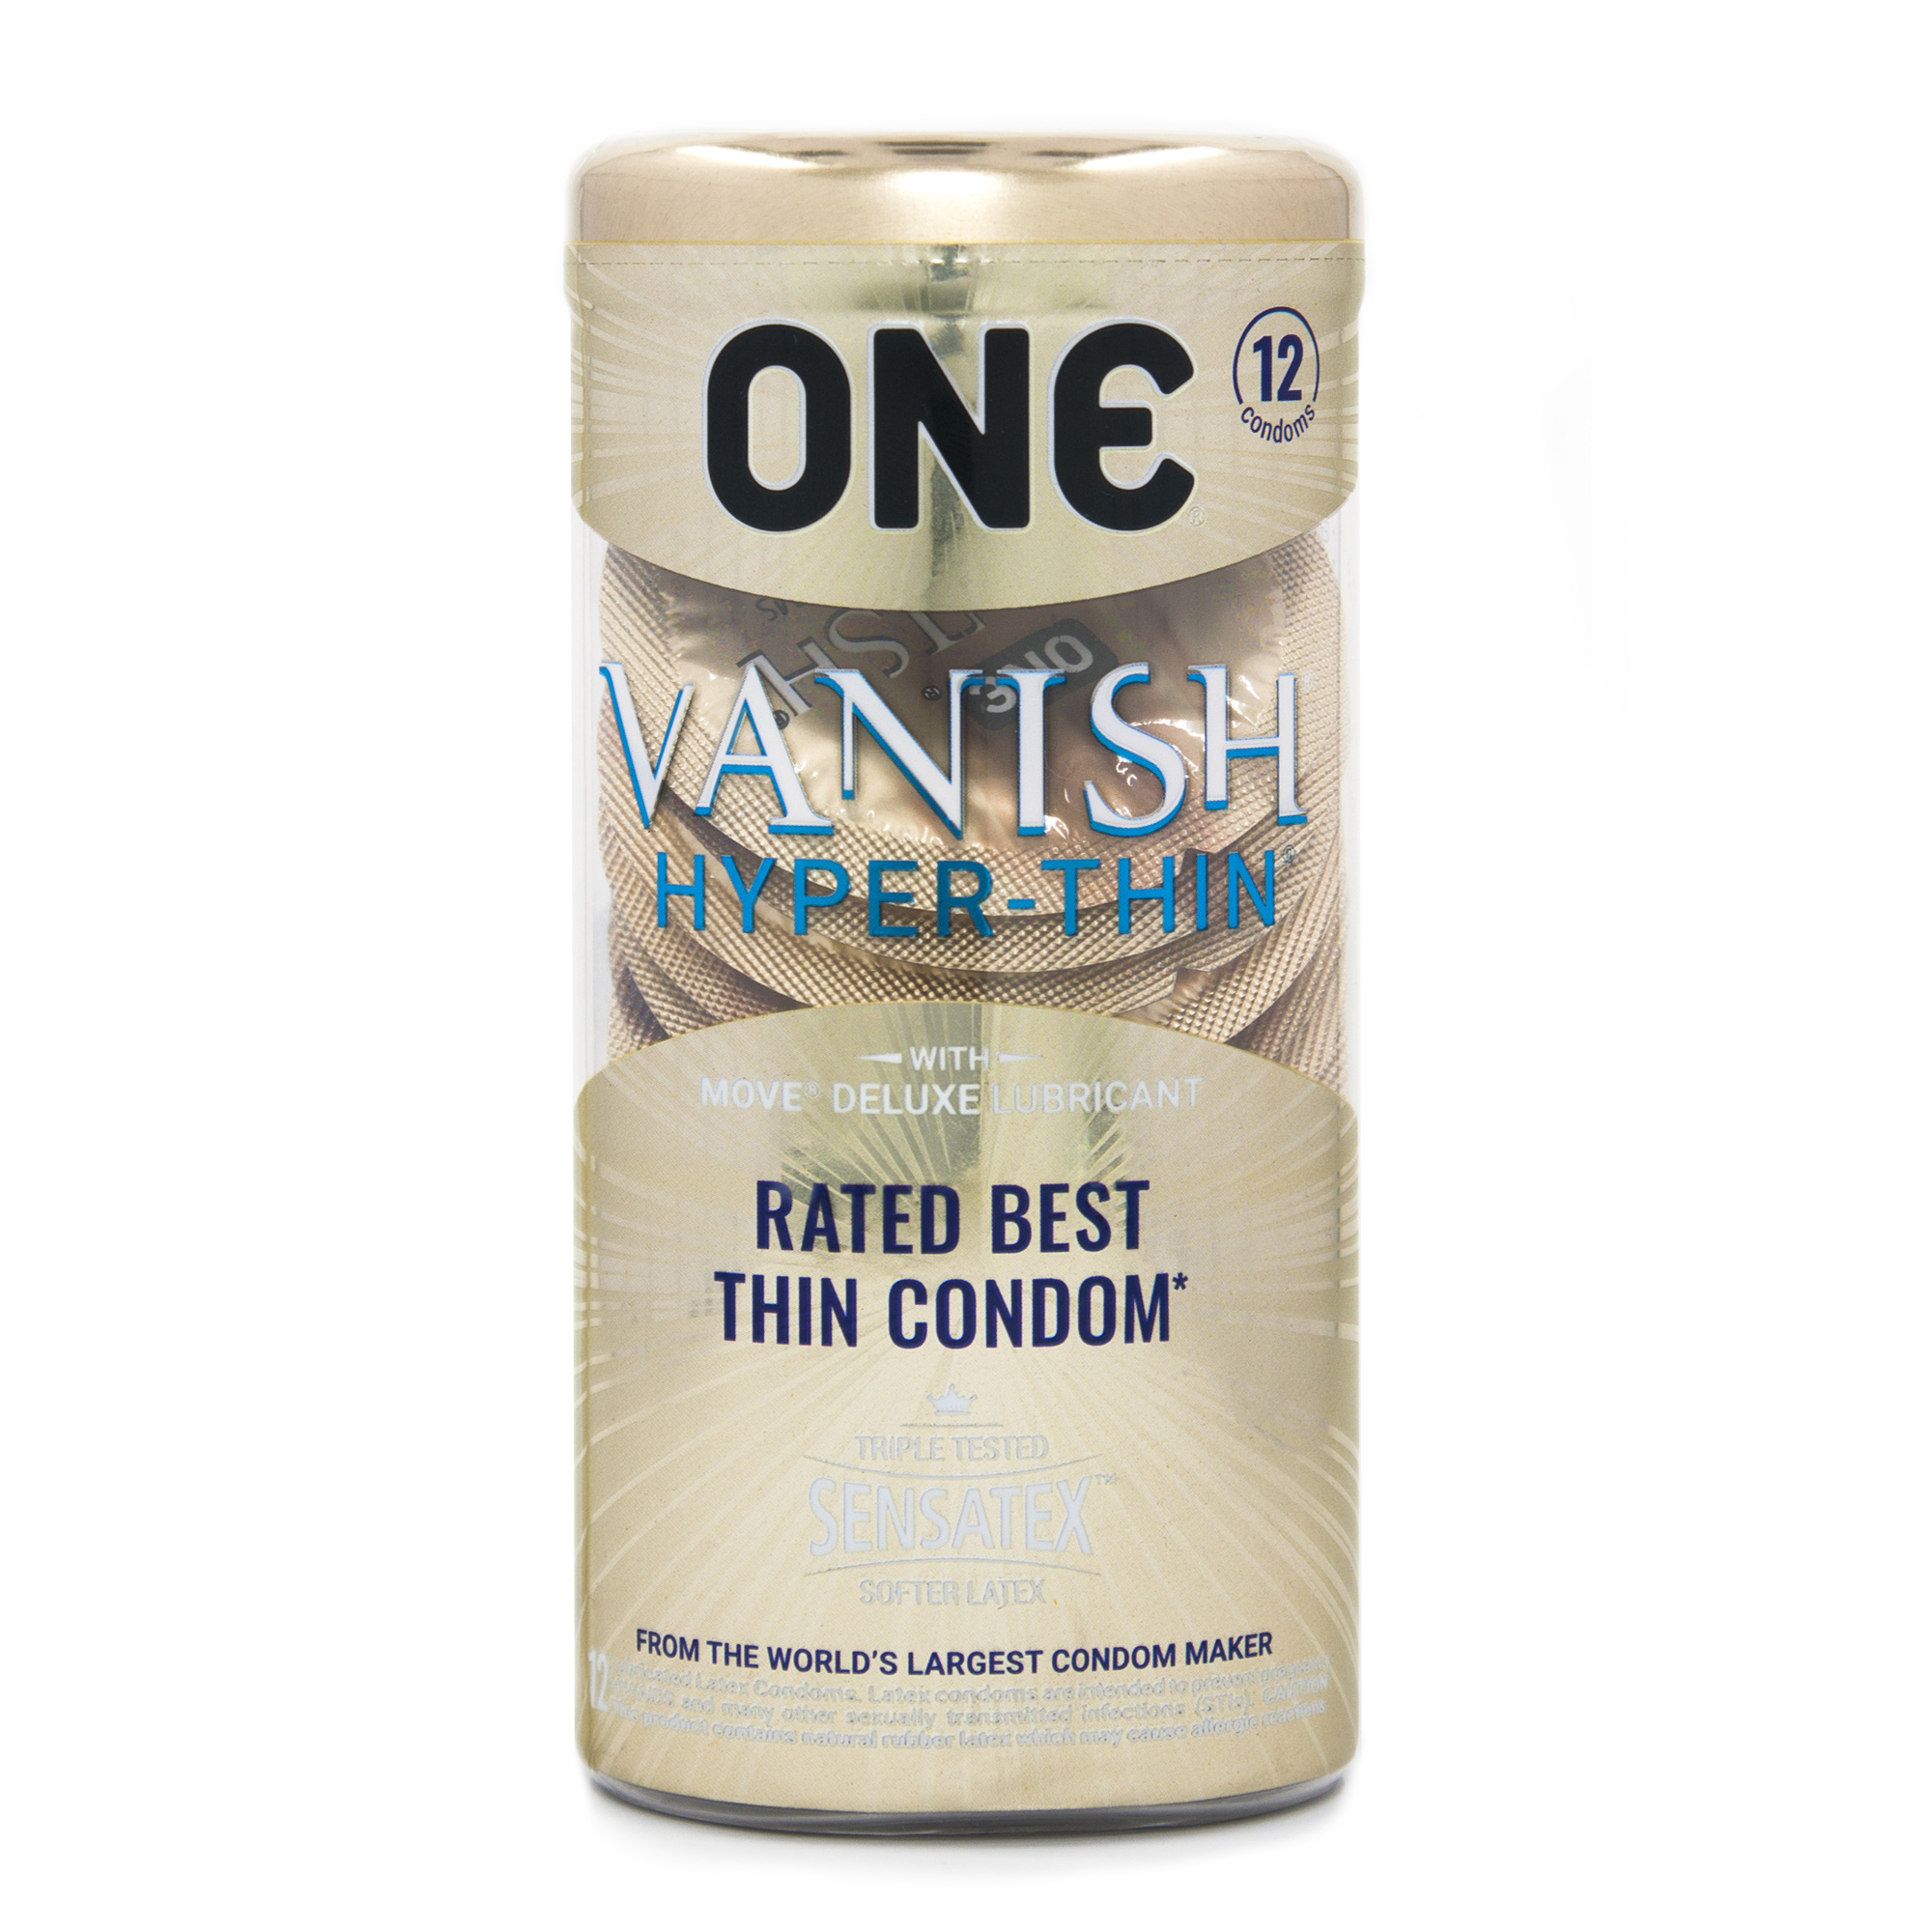 One Vanish Hyperthin Lubricated Latex Condoms - 12 ct